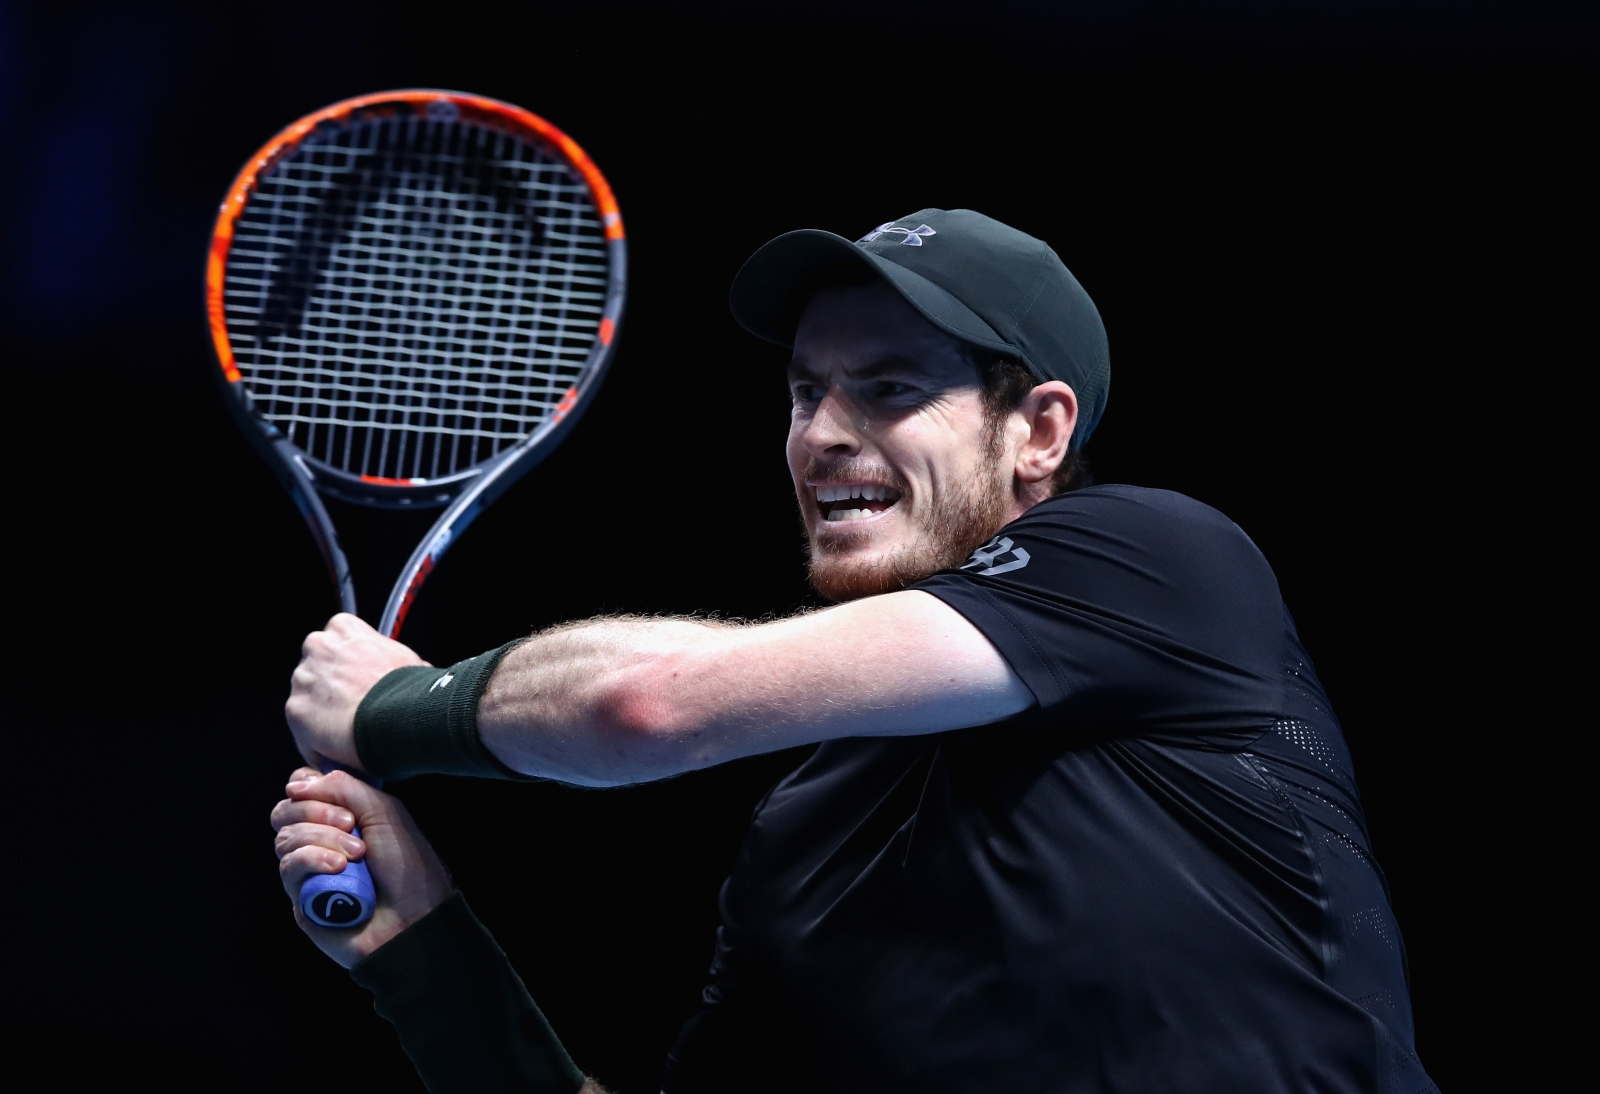 andy murray - photo #45